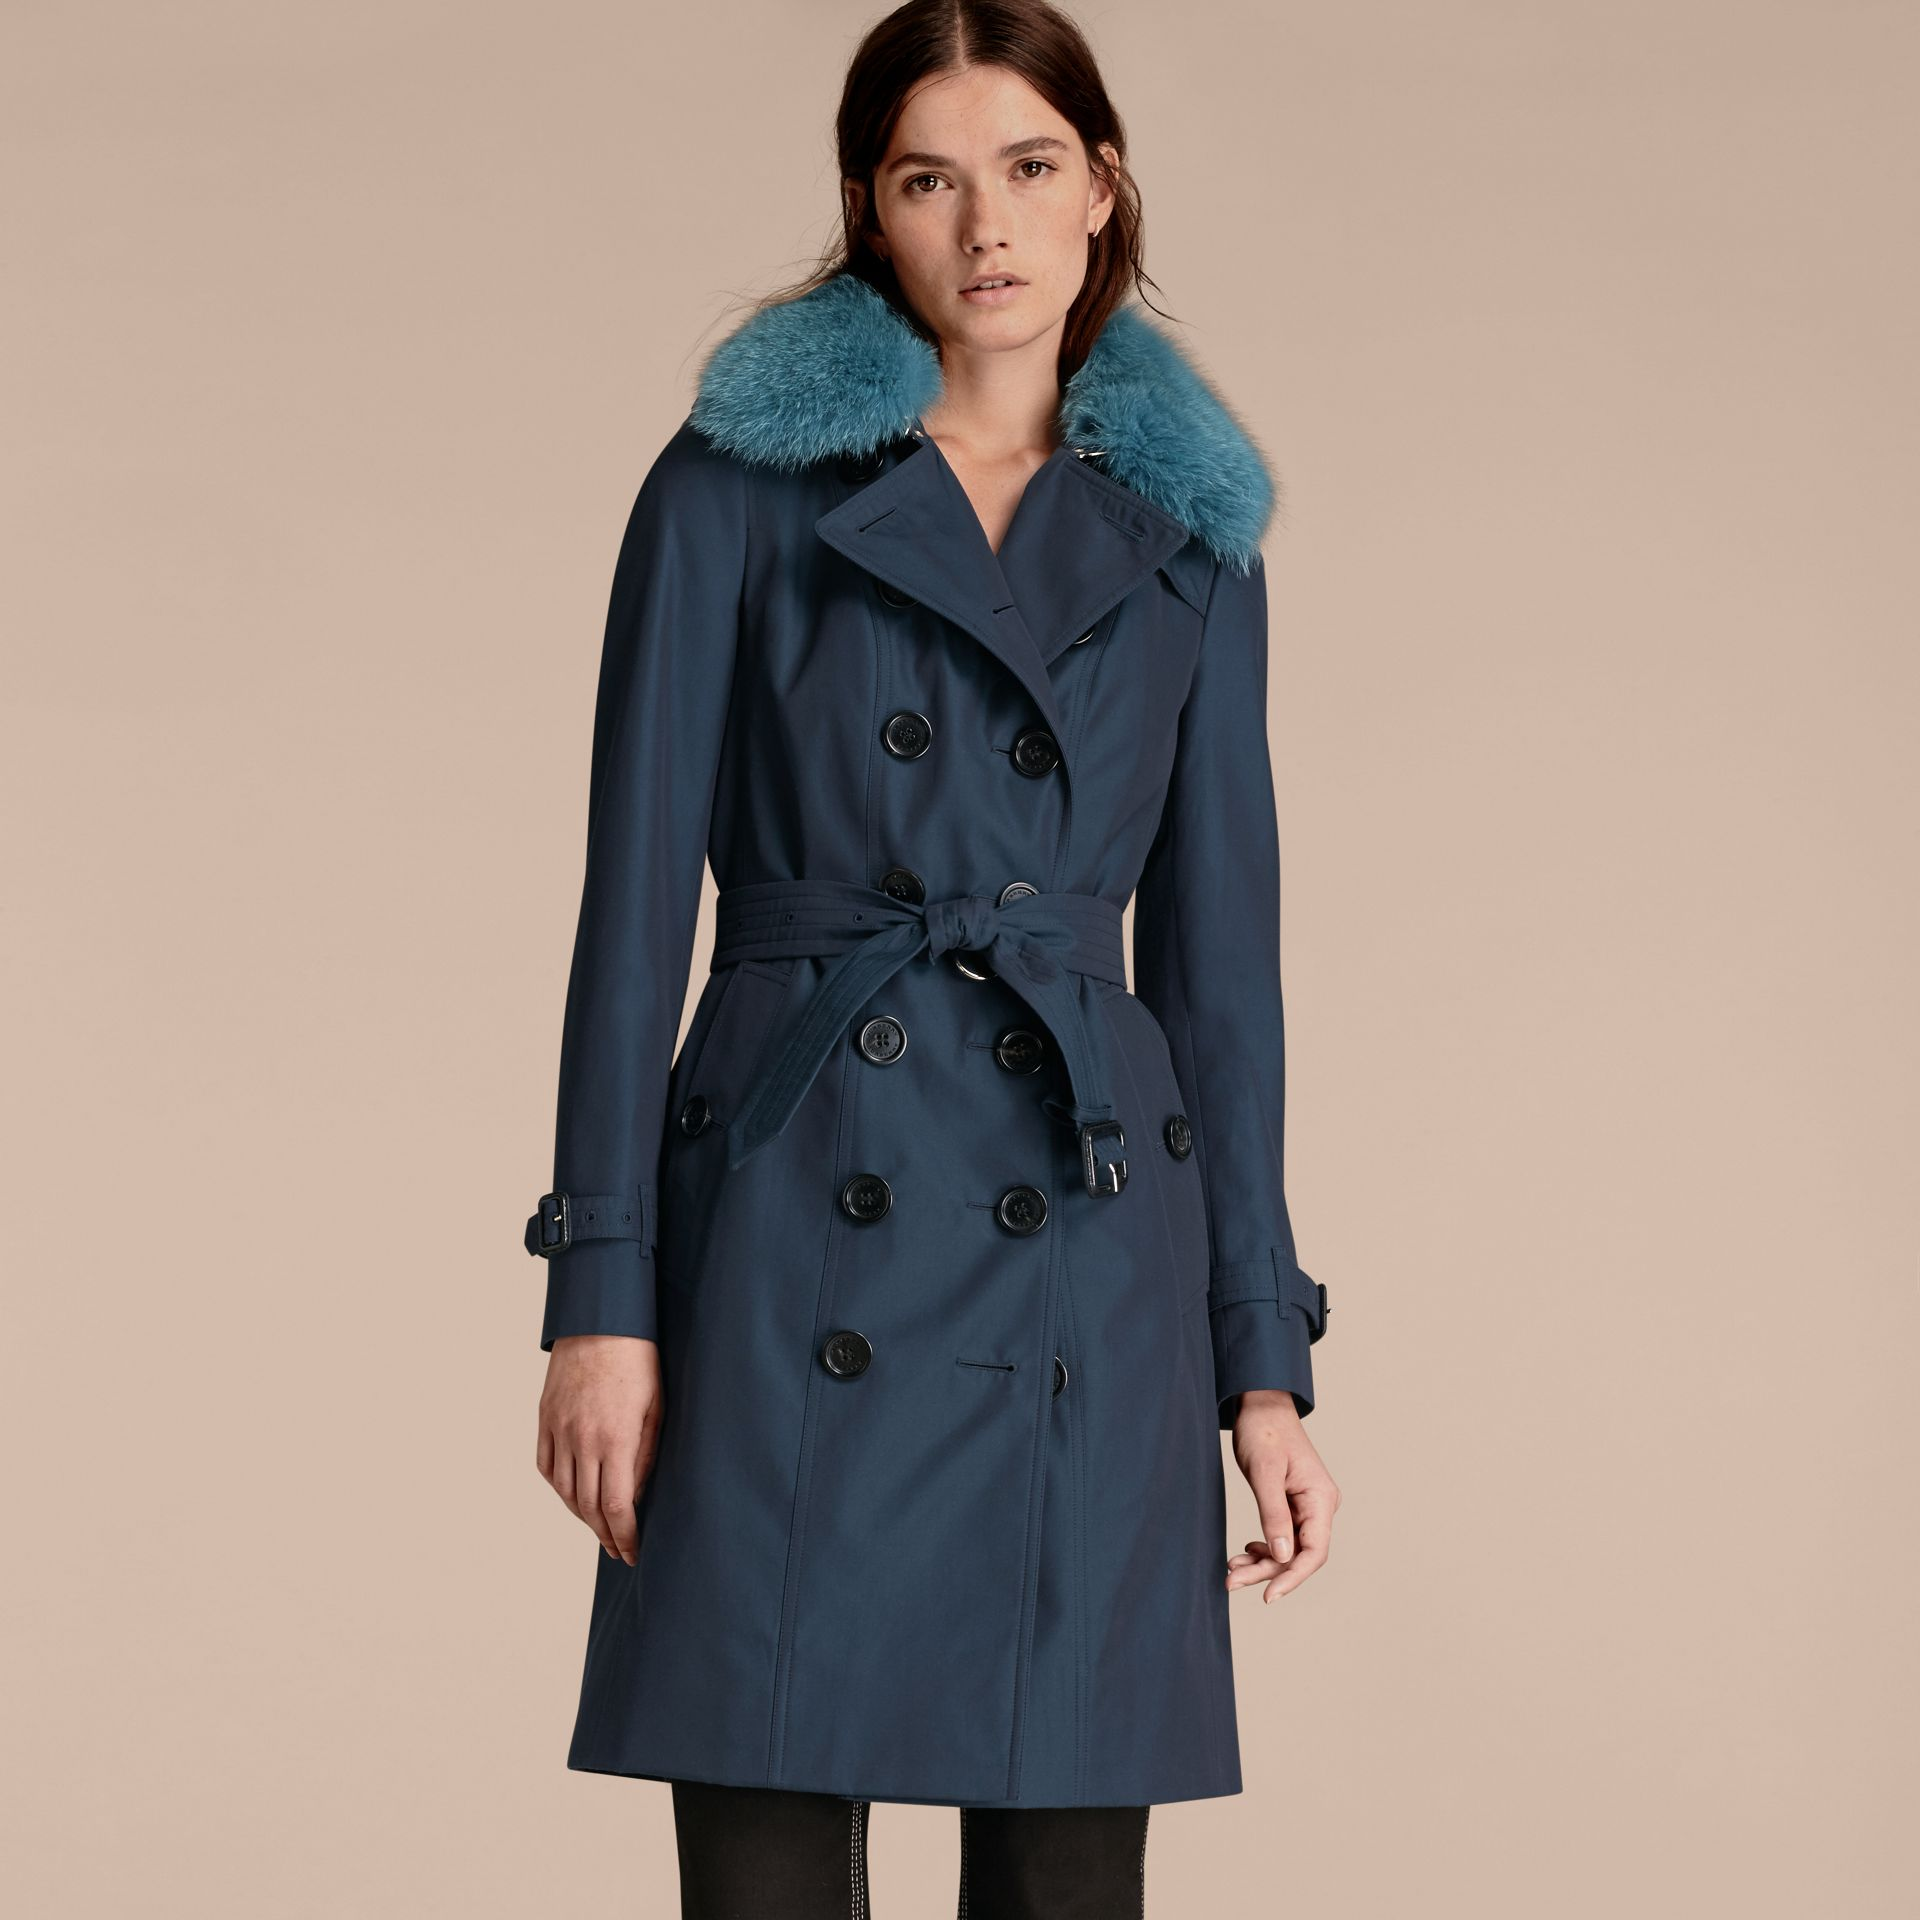 Teal blue Cotton Gabardine Trench Coat with Detachable Fur Collar and Warmer Teal Blue - gallery image 7